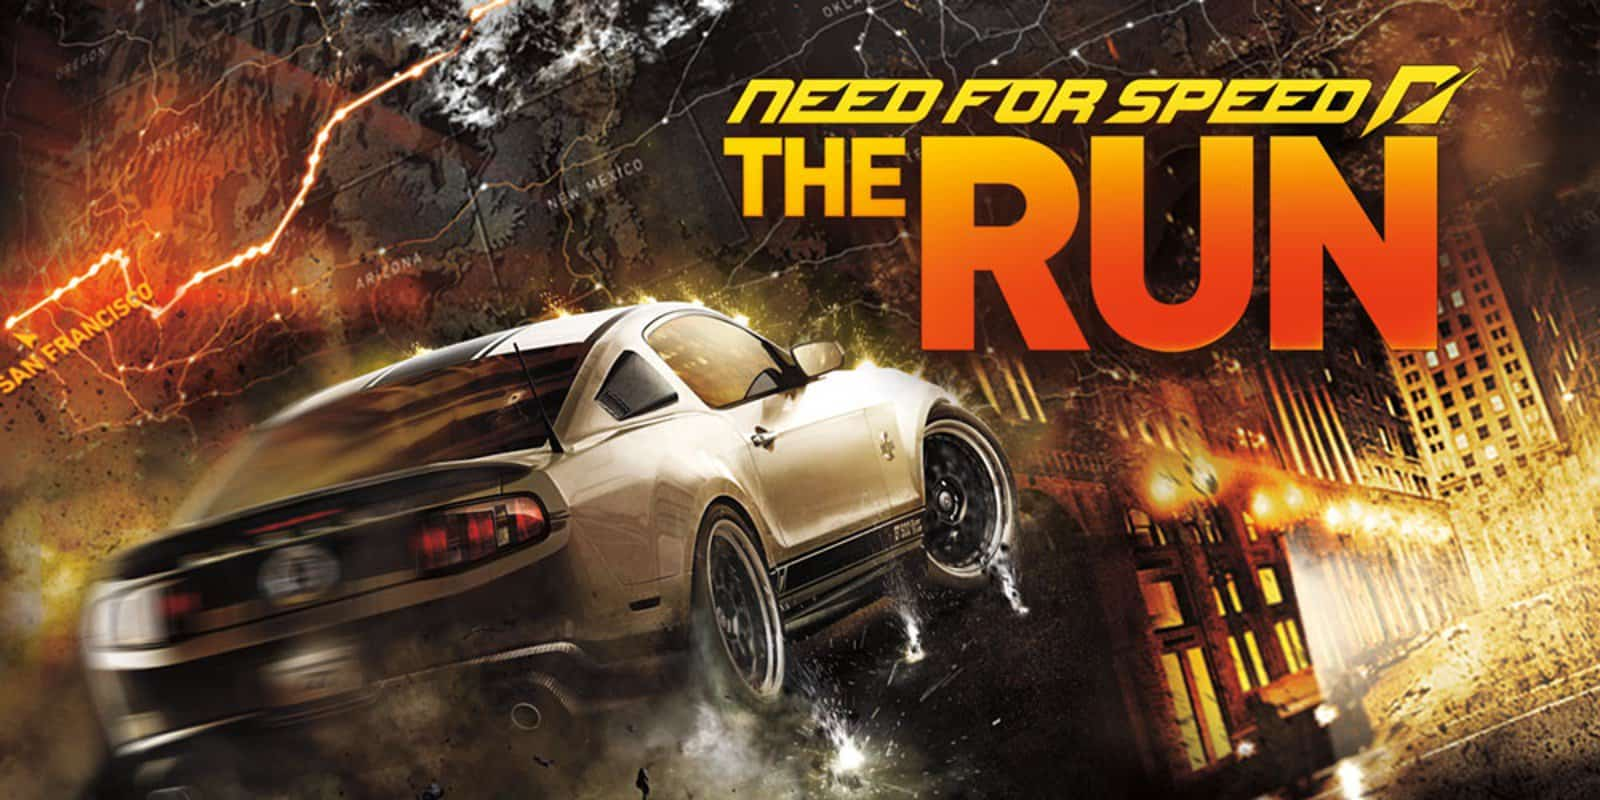 Need For Speed The Run PC Version Game Free Download